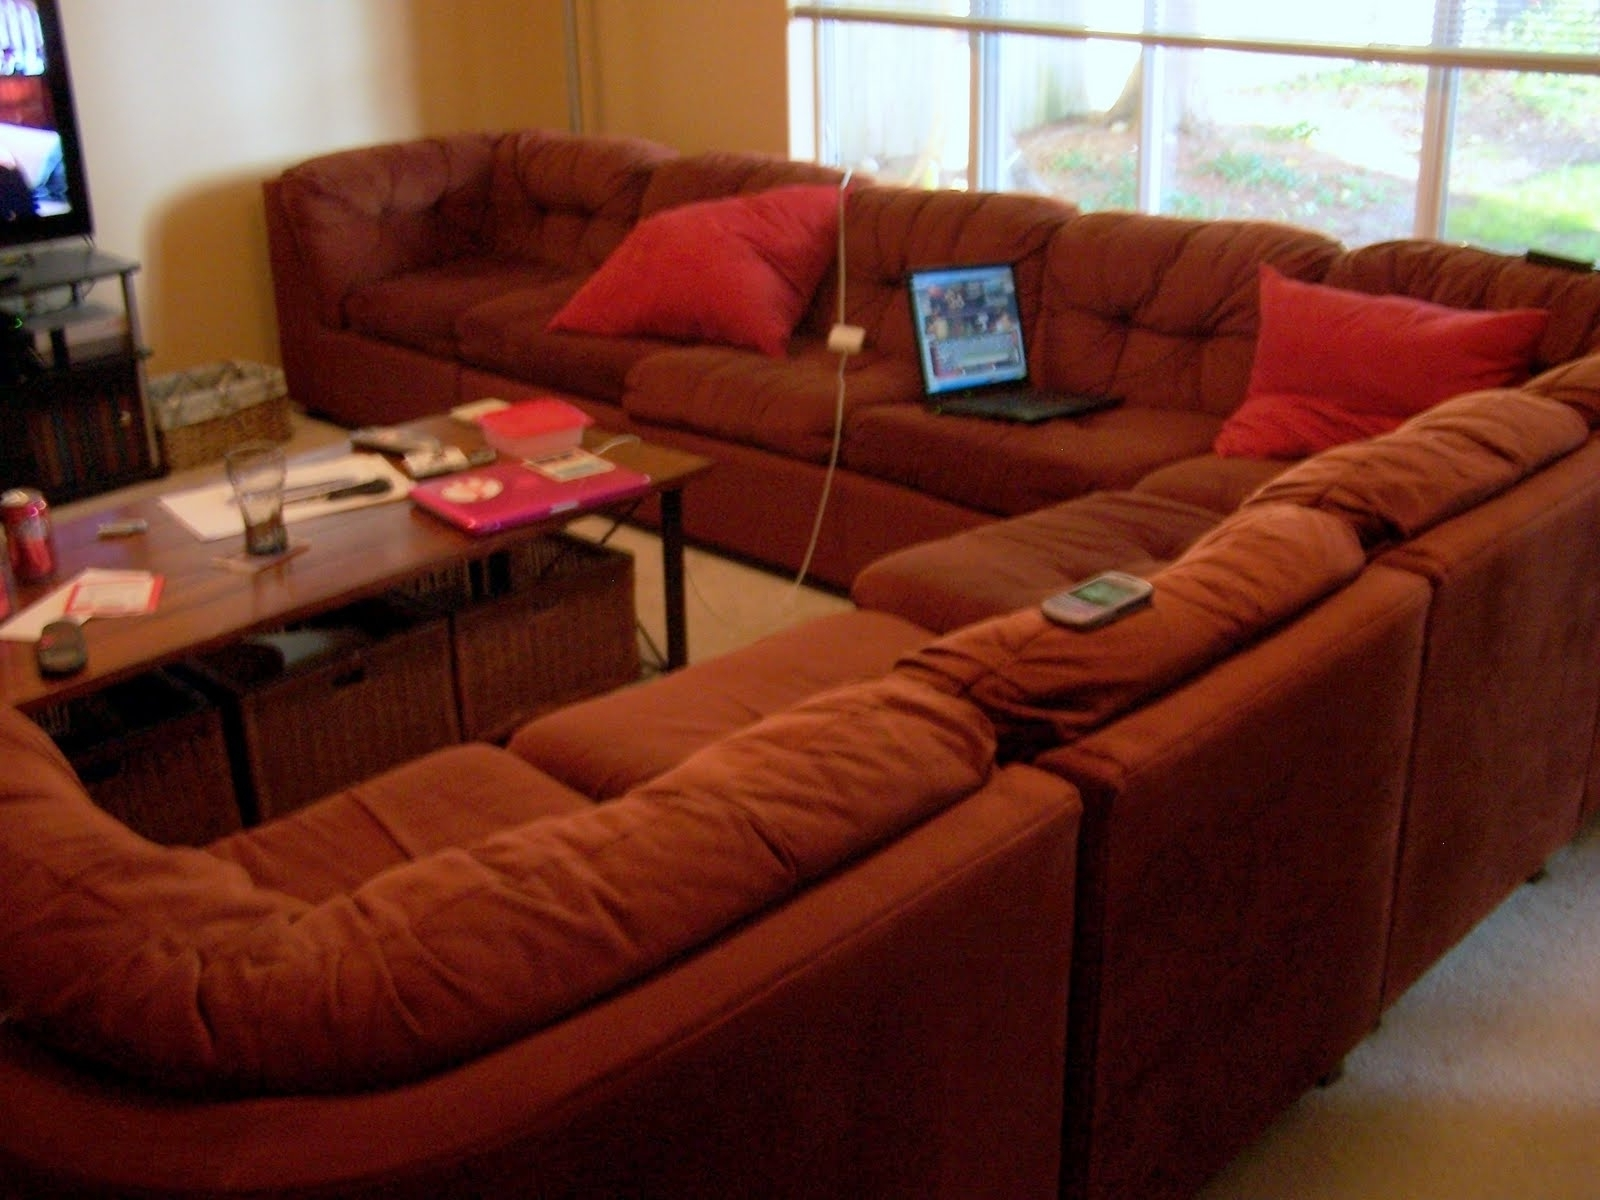 Best And Newest Stylish Sectional Sofas On Craigslist – Mediasupload For Sectional Sofas At Craigslist (View 7 of 20)